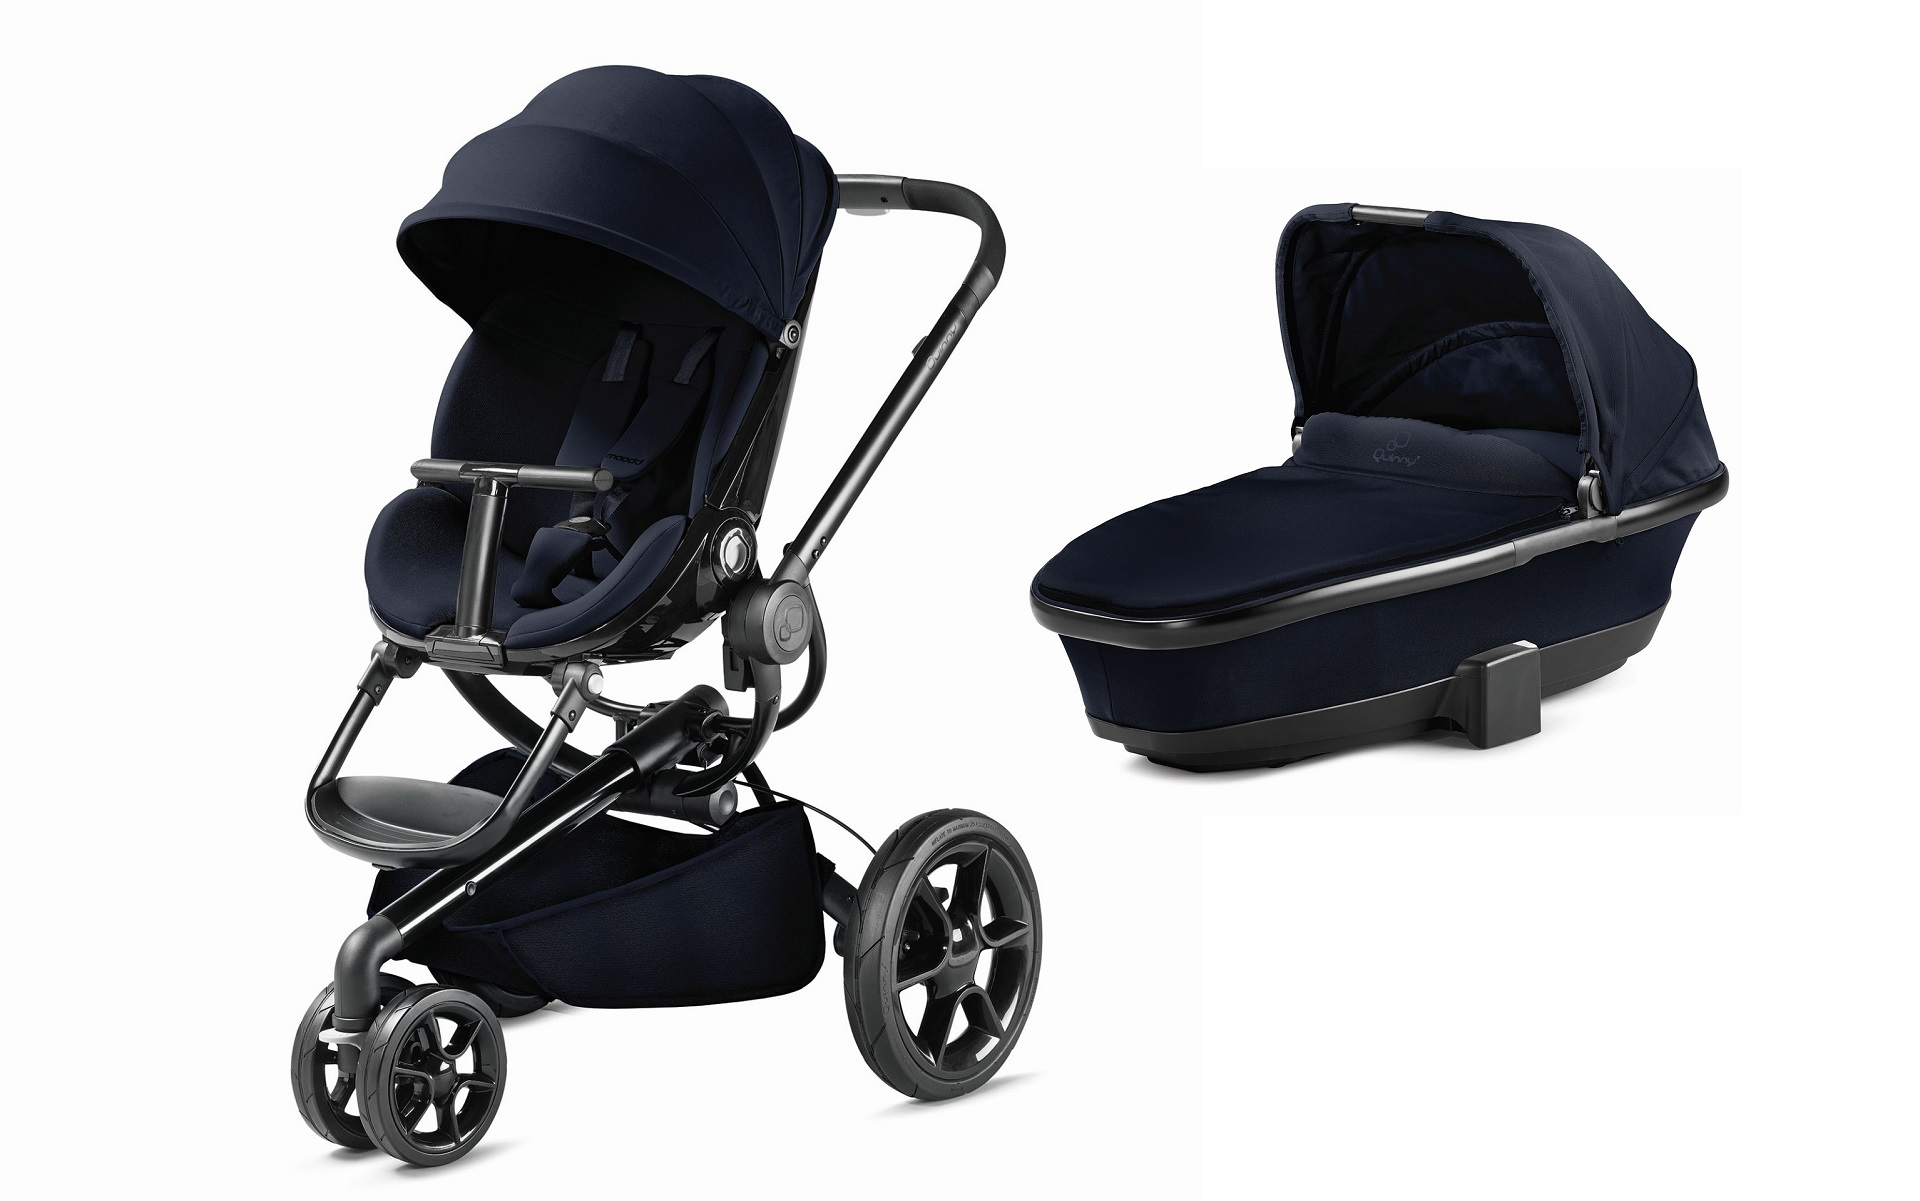 New RAINCOVER Zipped fits QUINNY MOODD Dreami Carrycot /& Seat Stroller